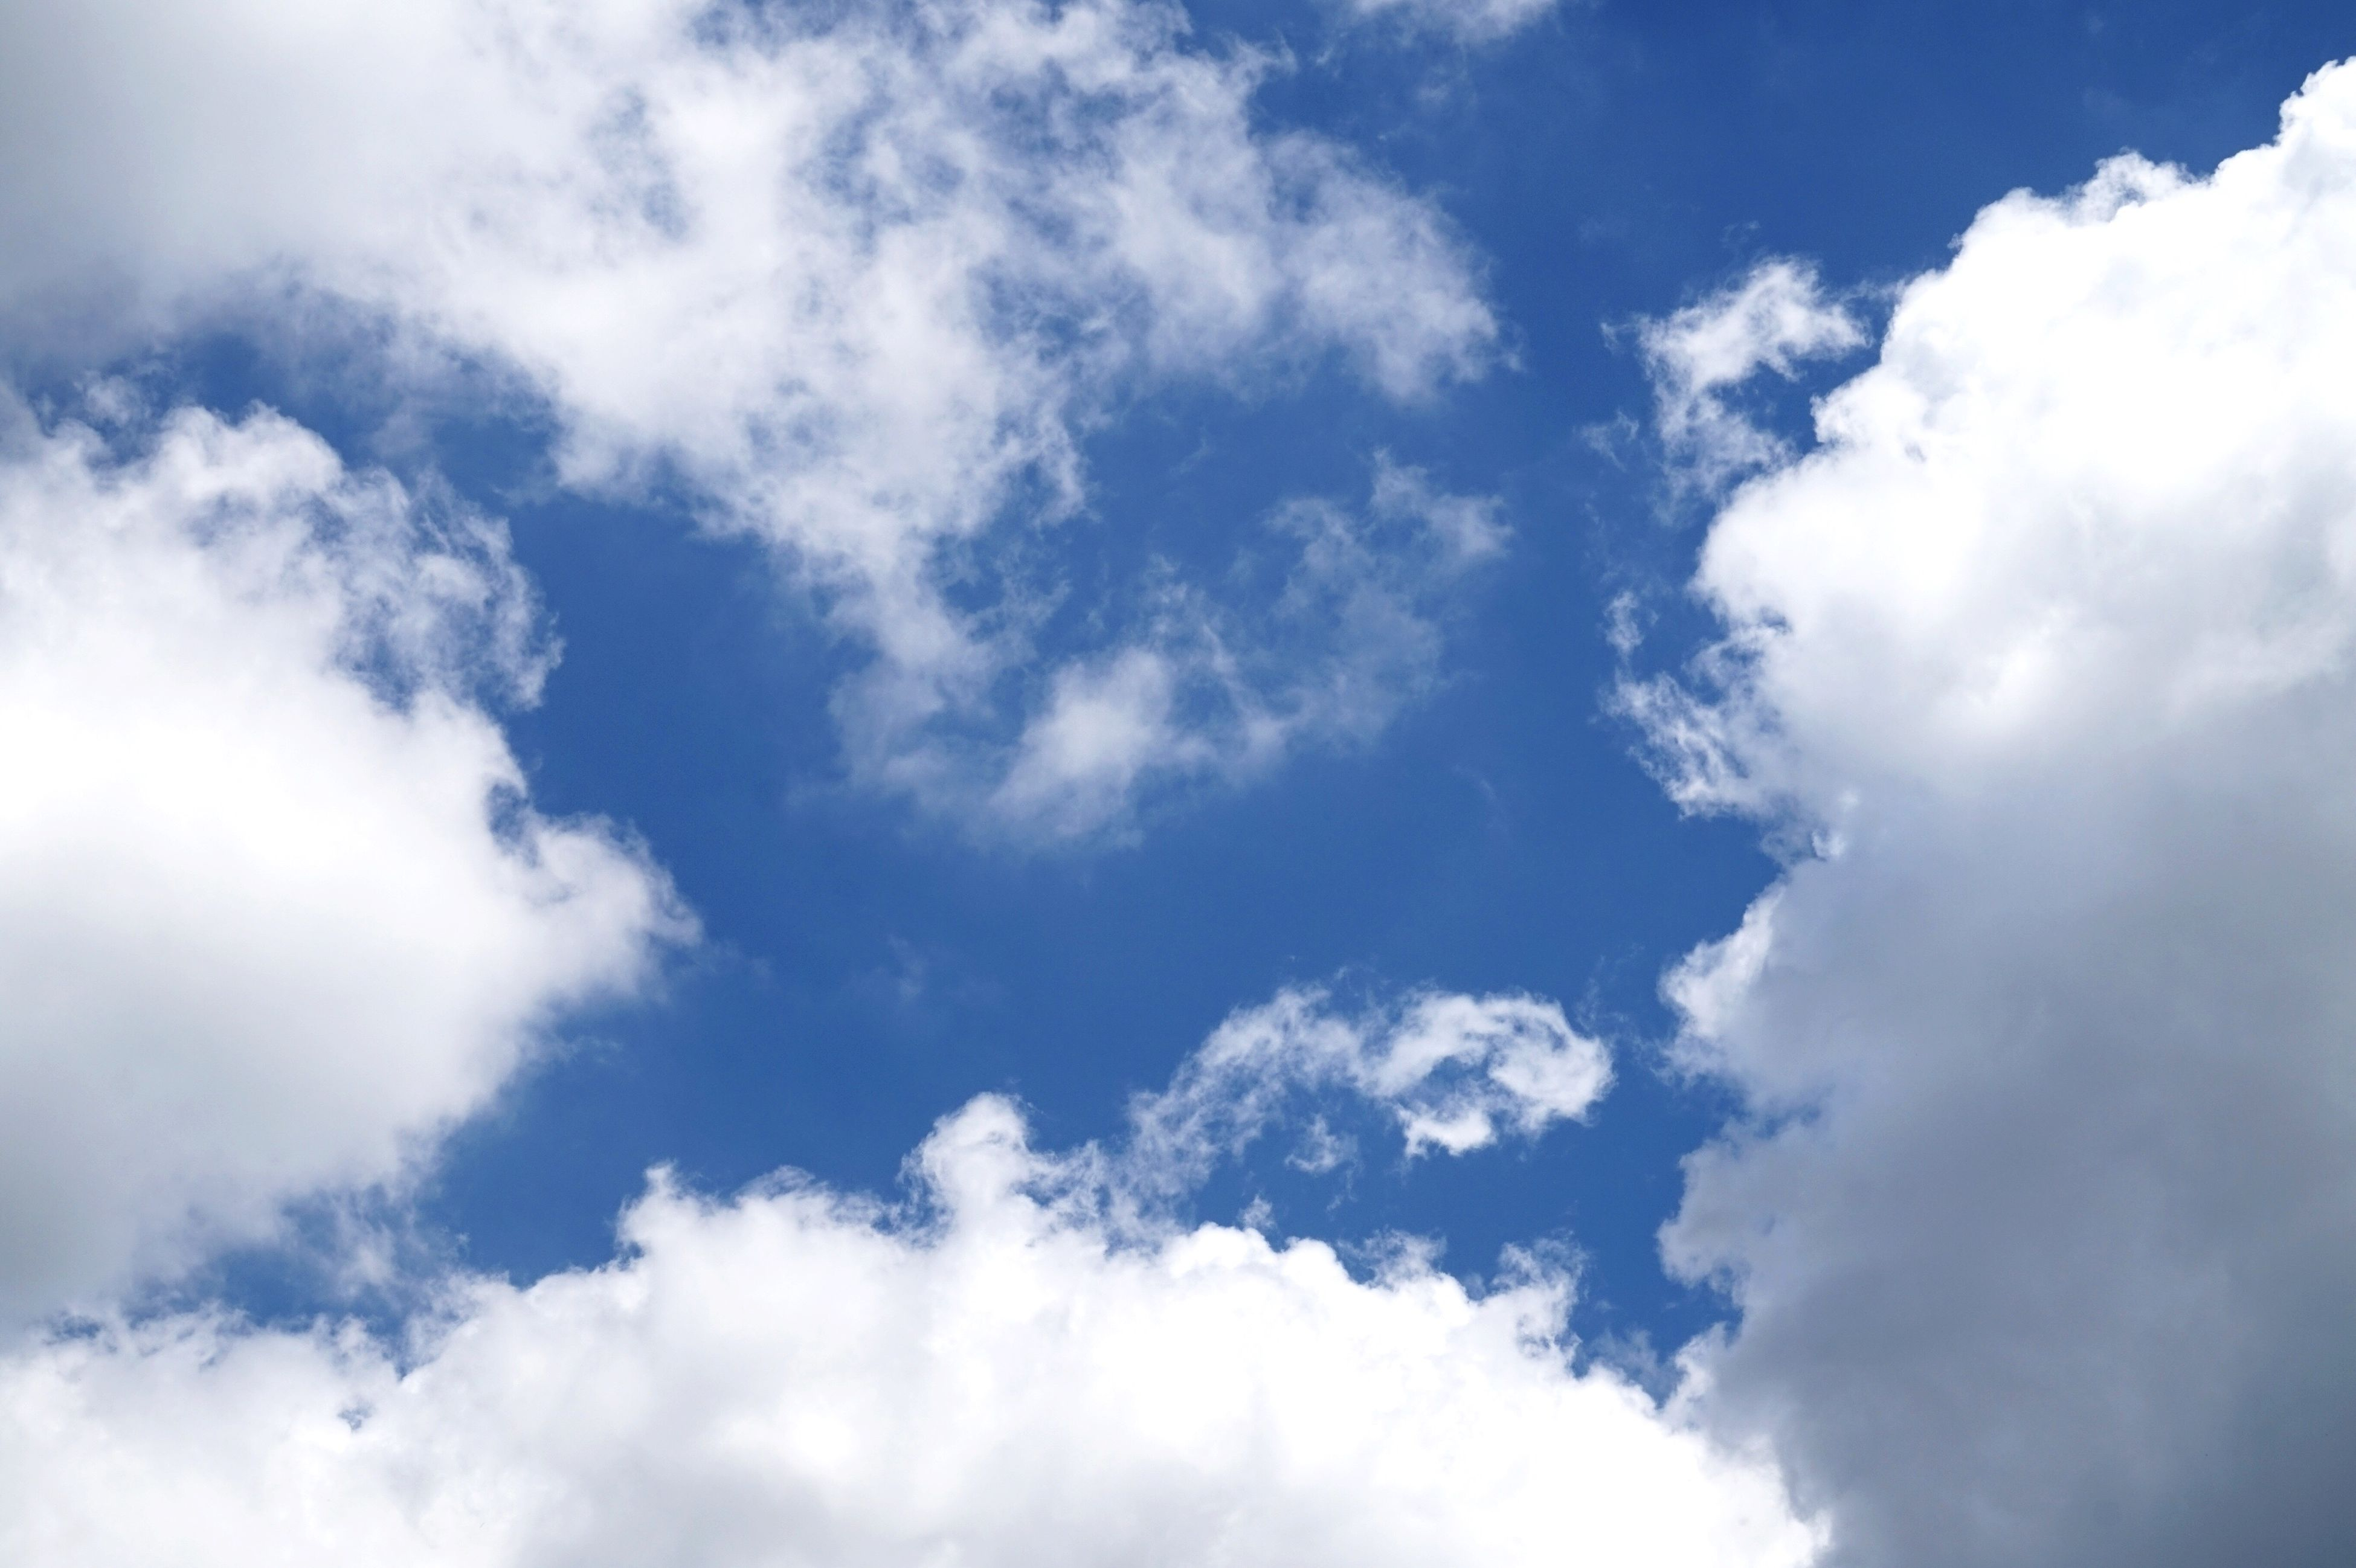 cloud - sky, beauty in nature, nature, sky, backgrounds, low angle view, white color, scenics, sky only, tranquility, full frame, day, blue, no people, outdoors